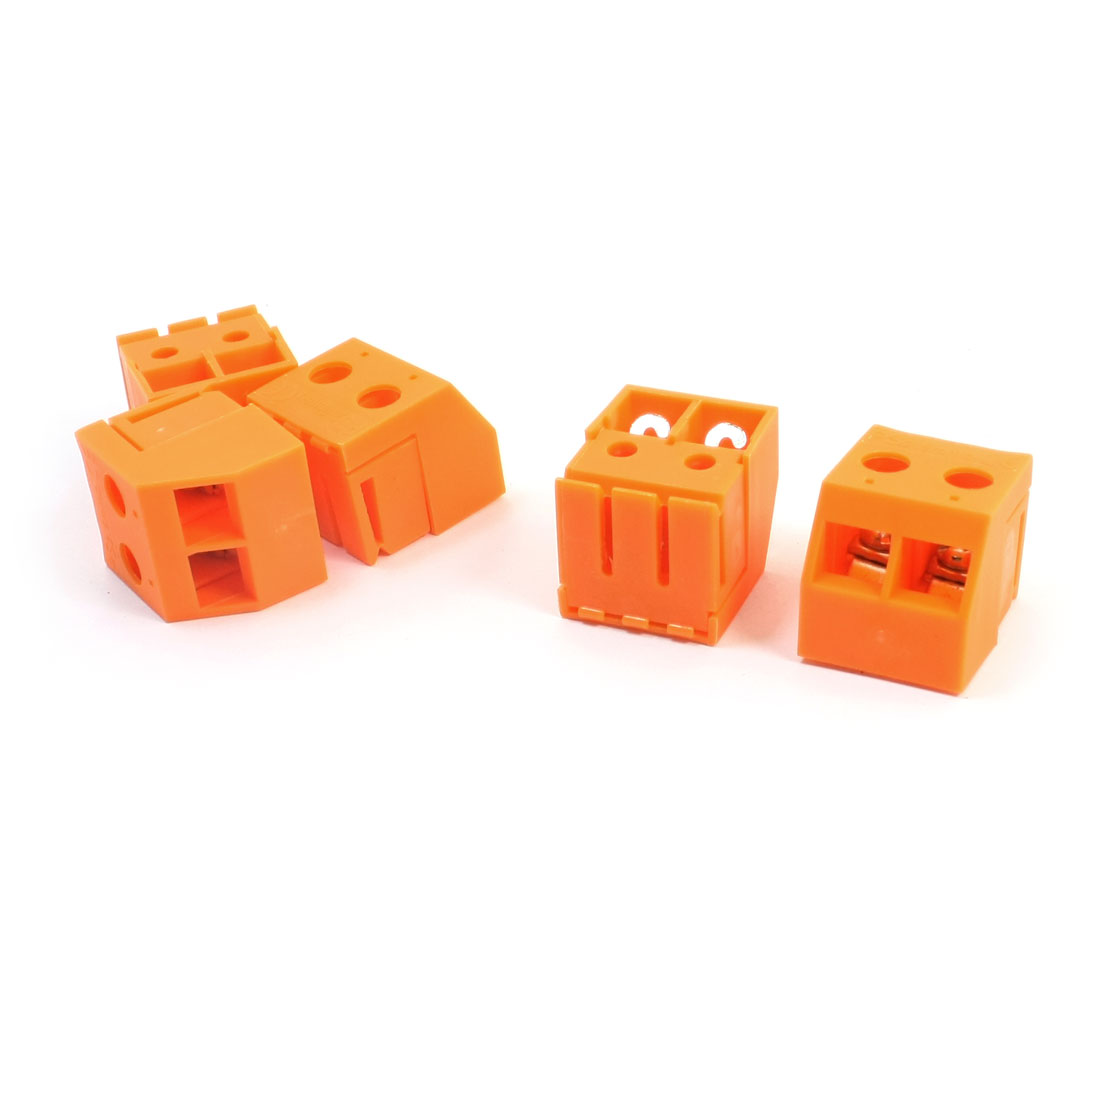 5 Pcs AC750V 30A 10mm Spacing 2-Pole 24-8AWG Wire Orange Transformer Screw Terminal Barrier Block Connector w Cover